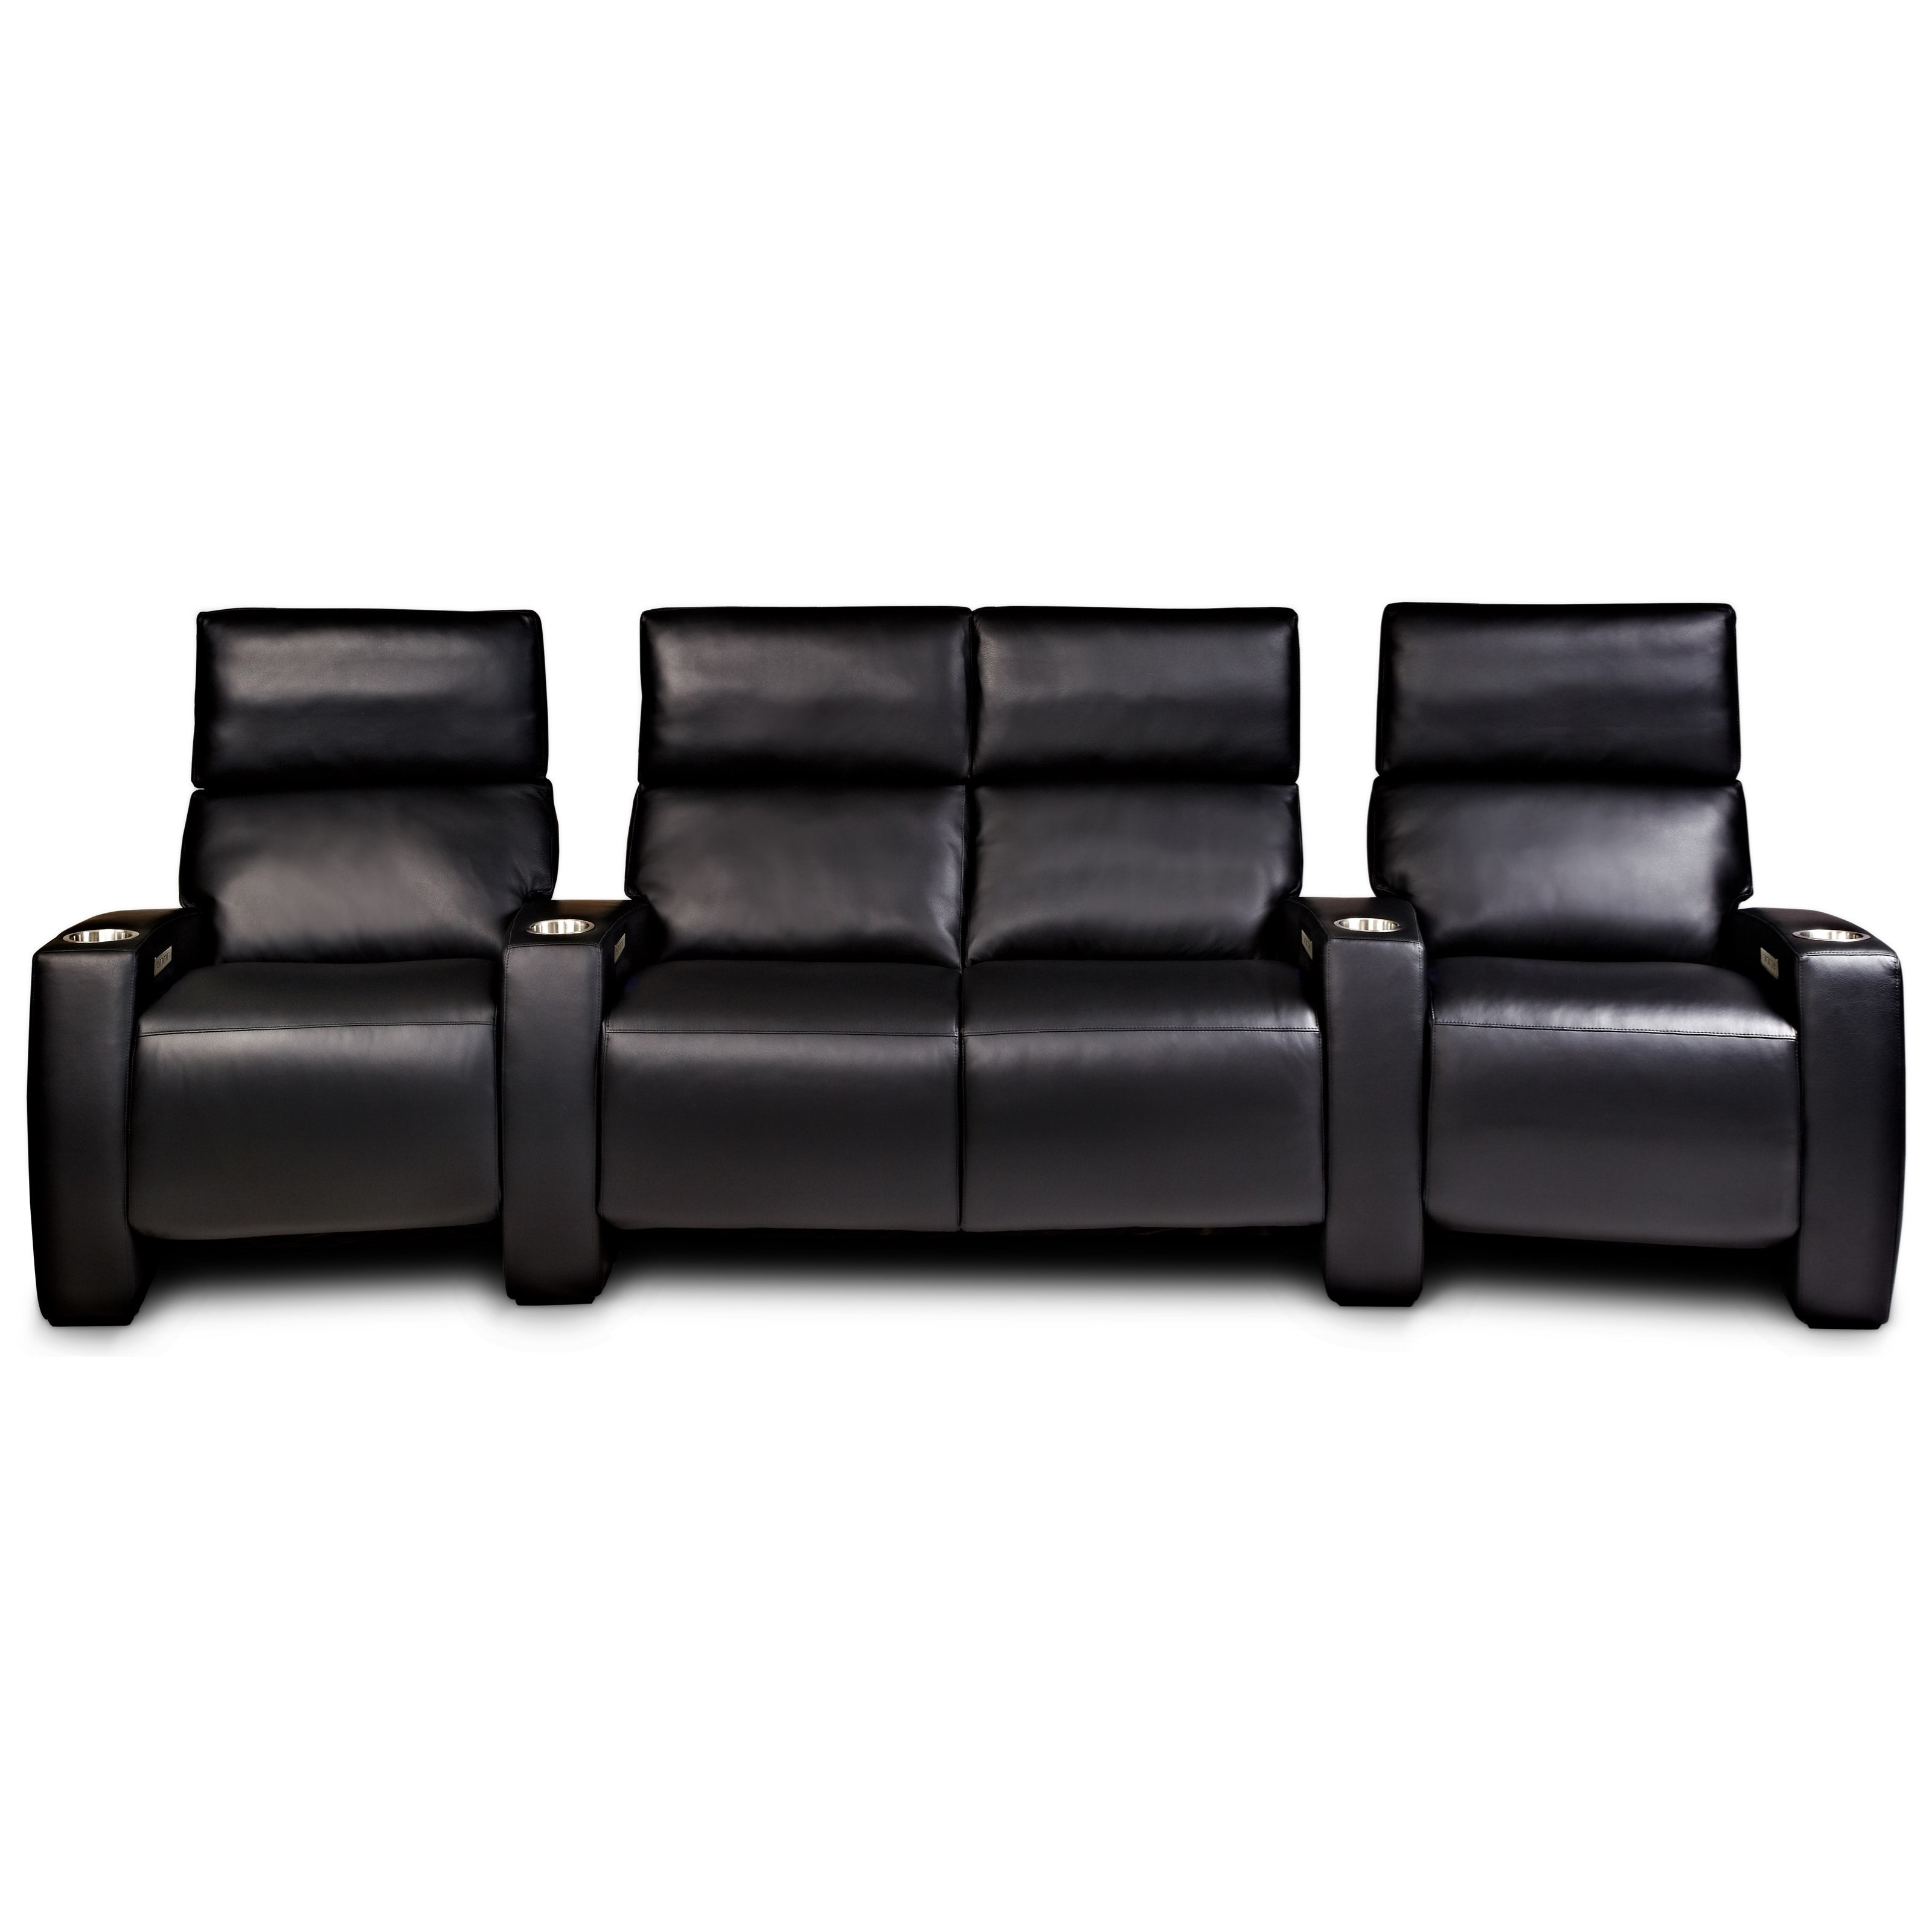 Wondrous American Leather Monroe 4 Seat Power Reclining Home Theater Creativecarmelina Interior Chair Design Creativecarmelinacom